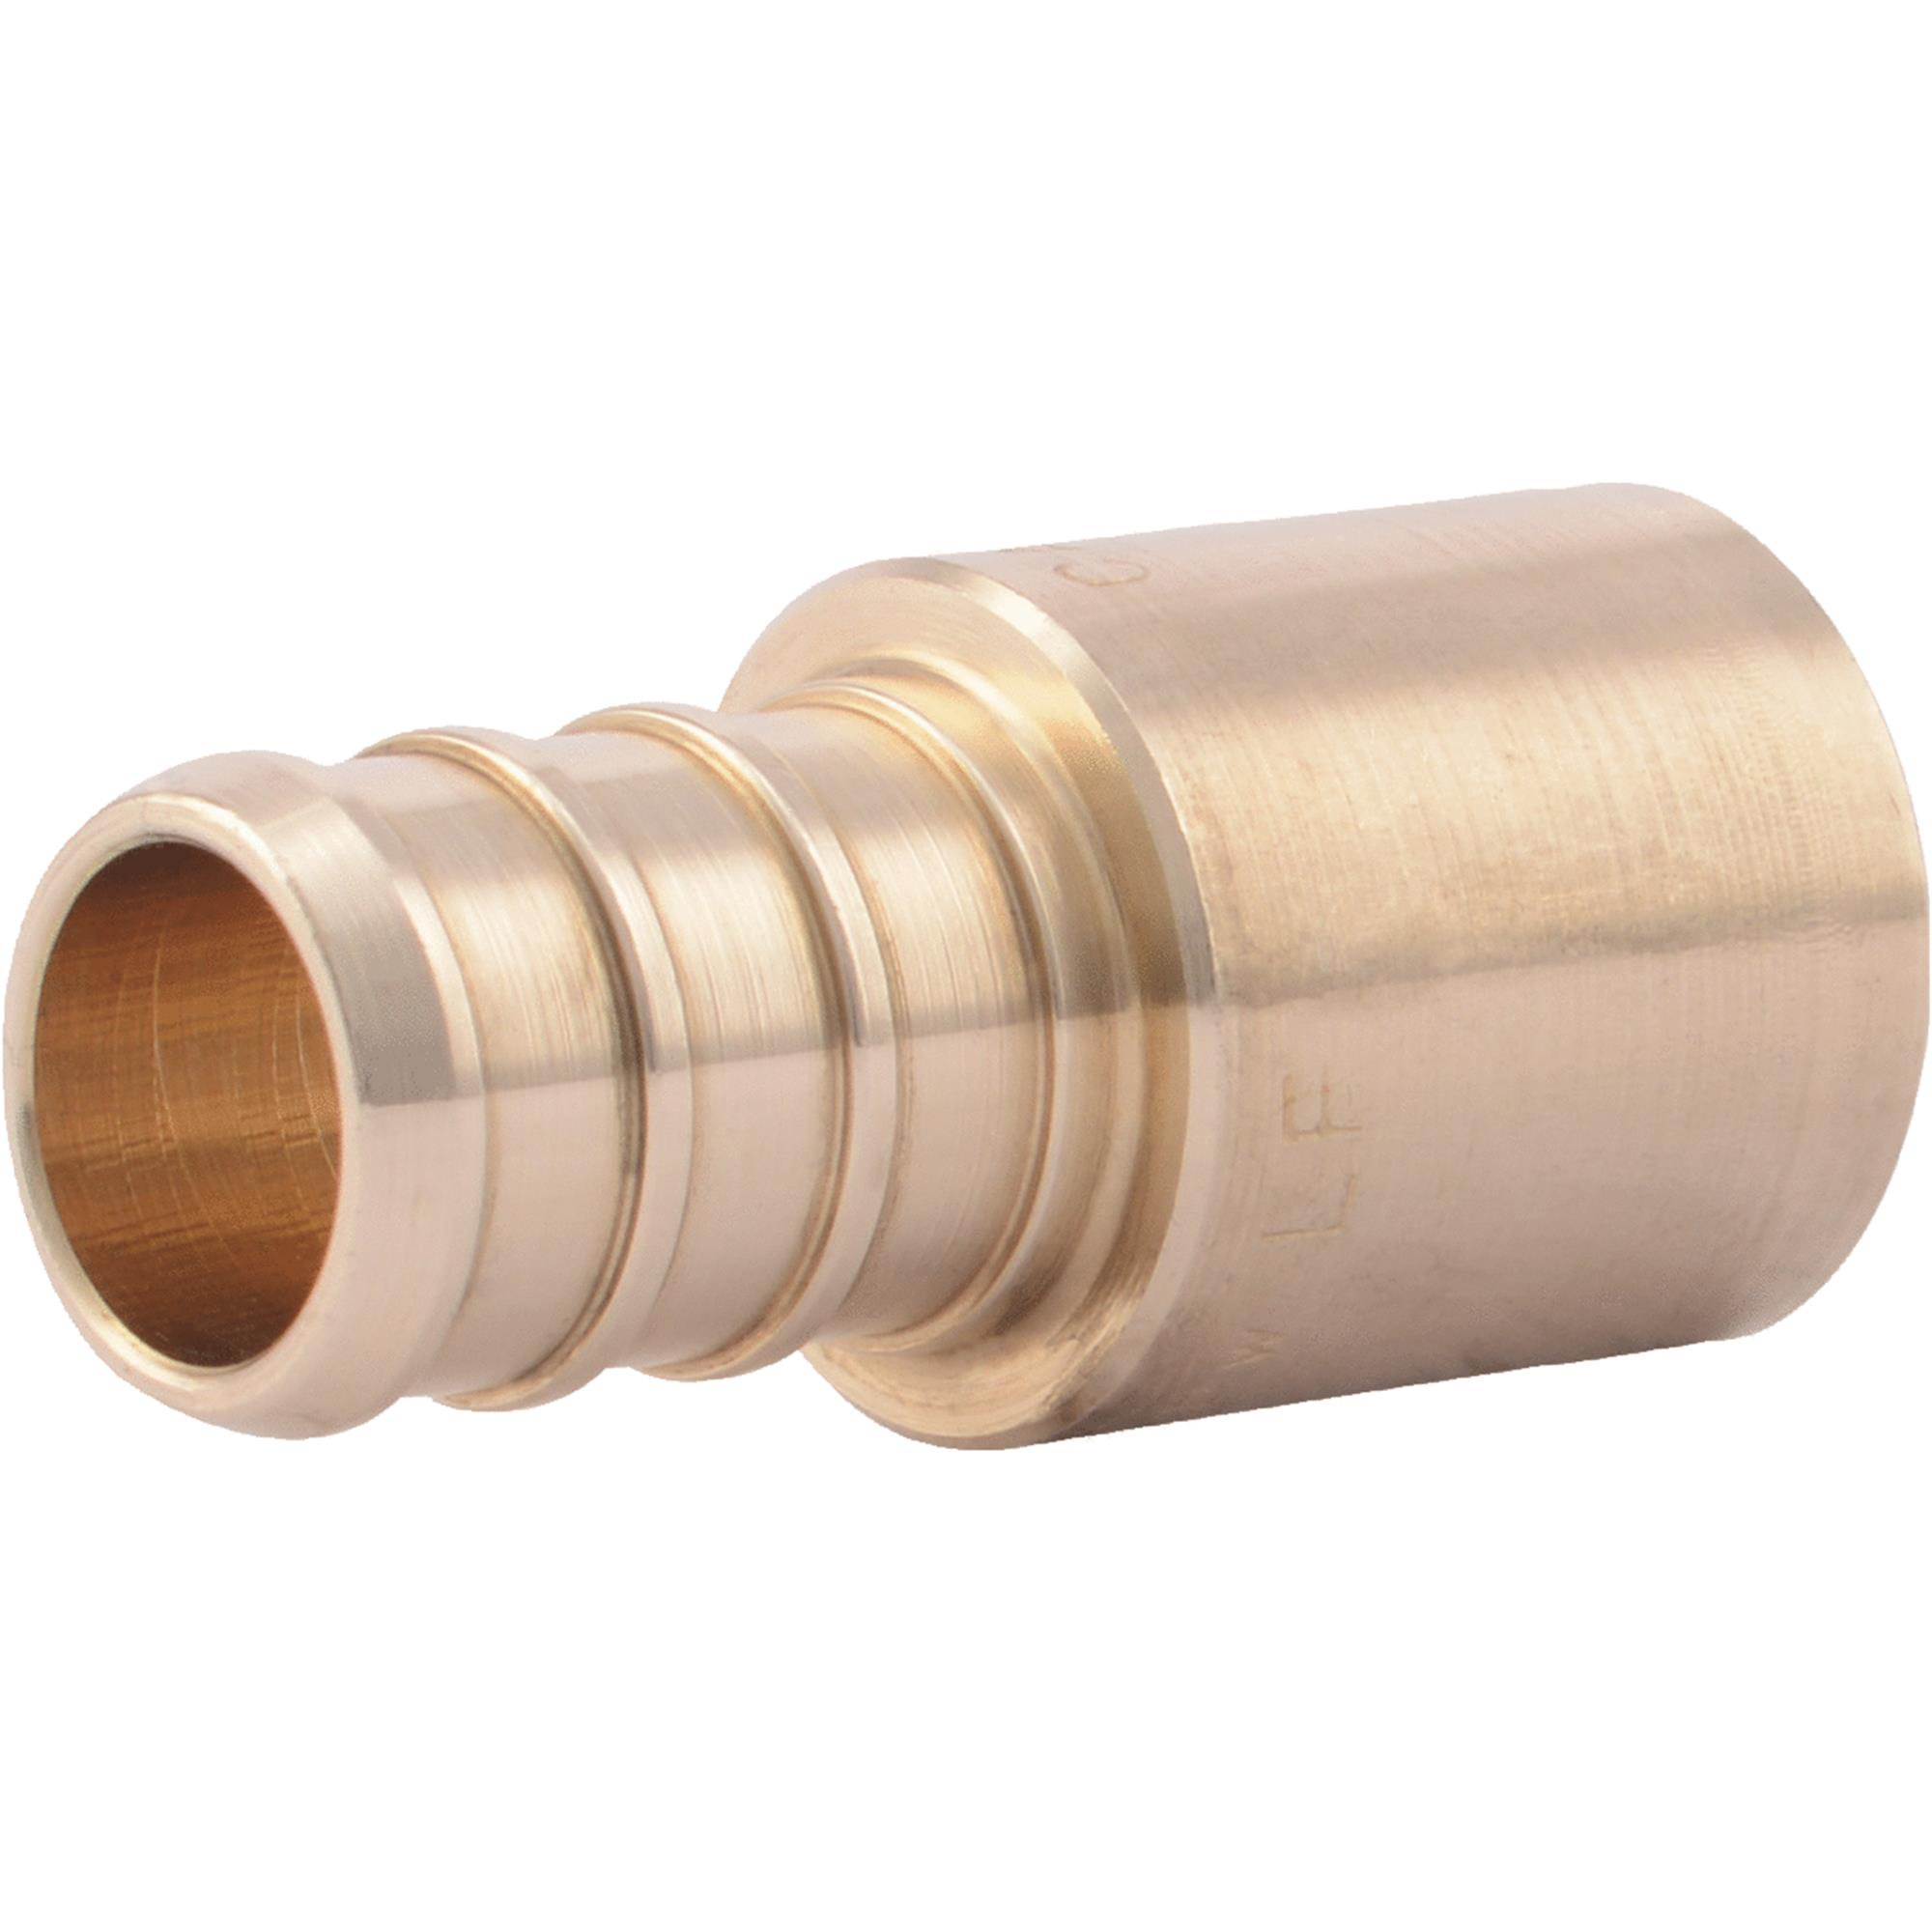 1/2-Inch Brass Pex Barb x 1/2-Inch Male Sweat Adapter